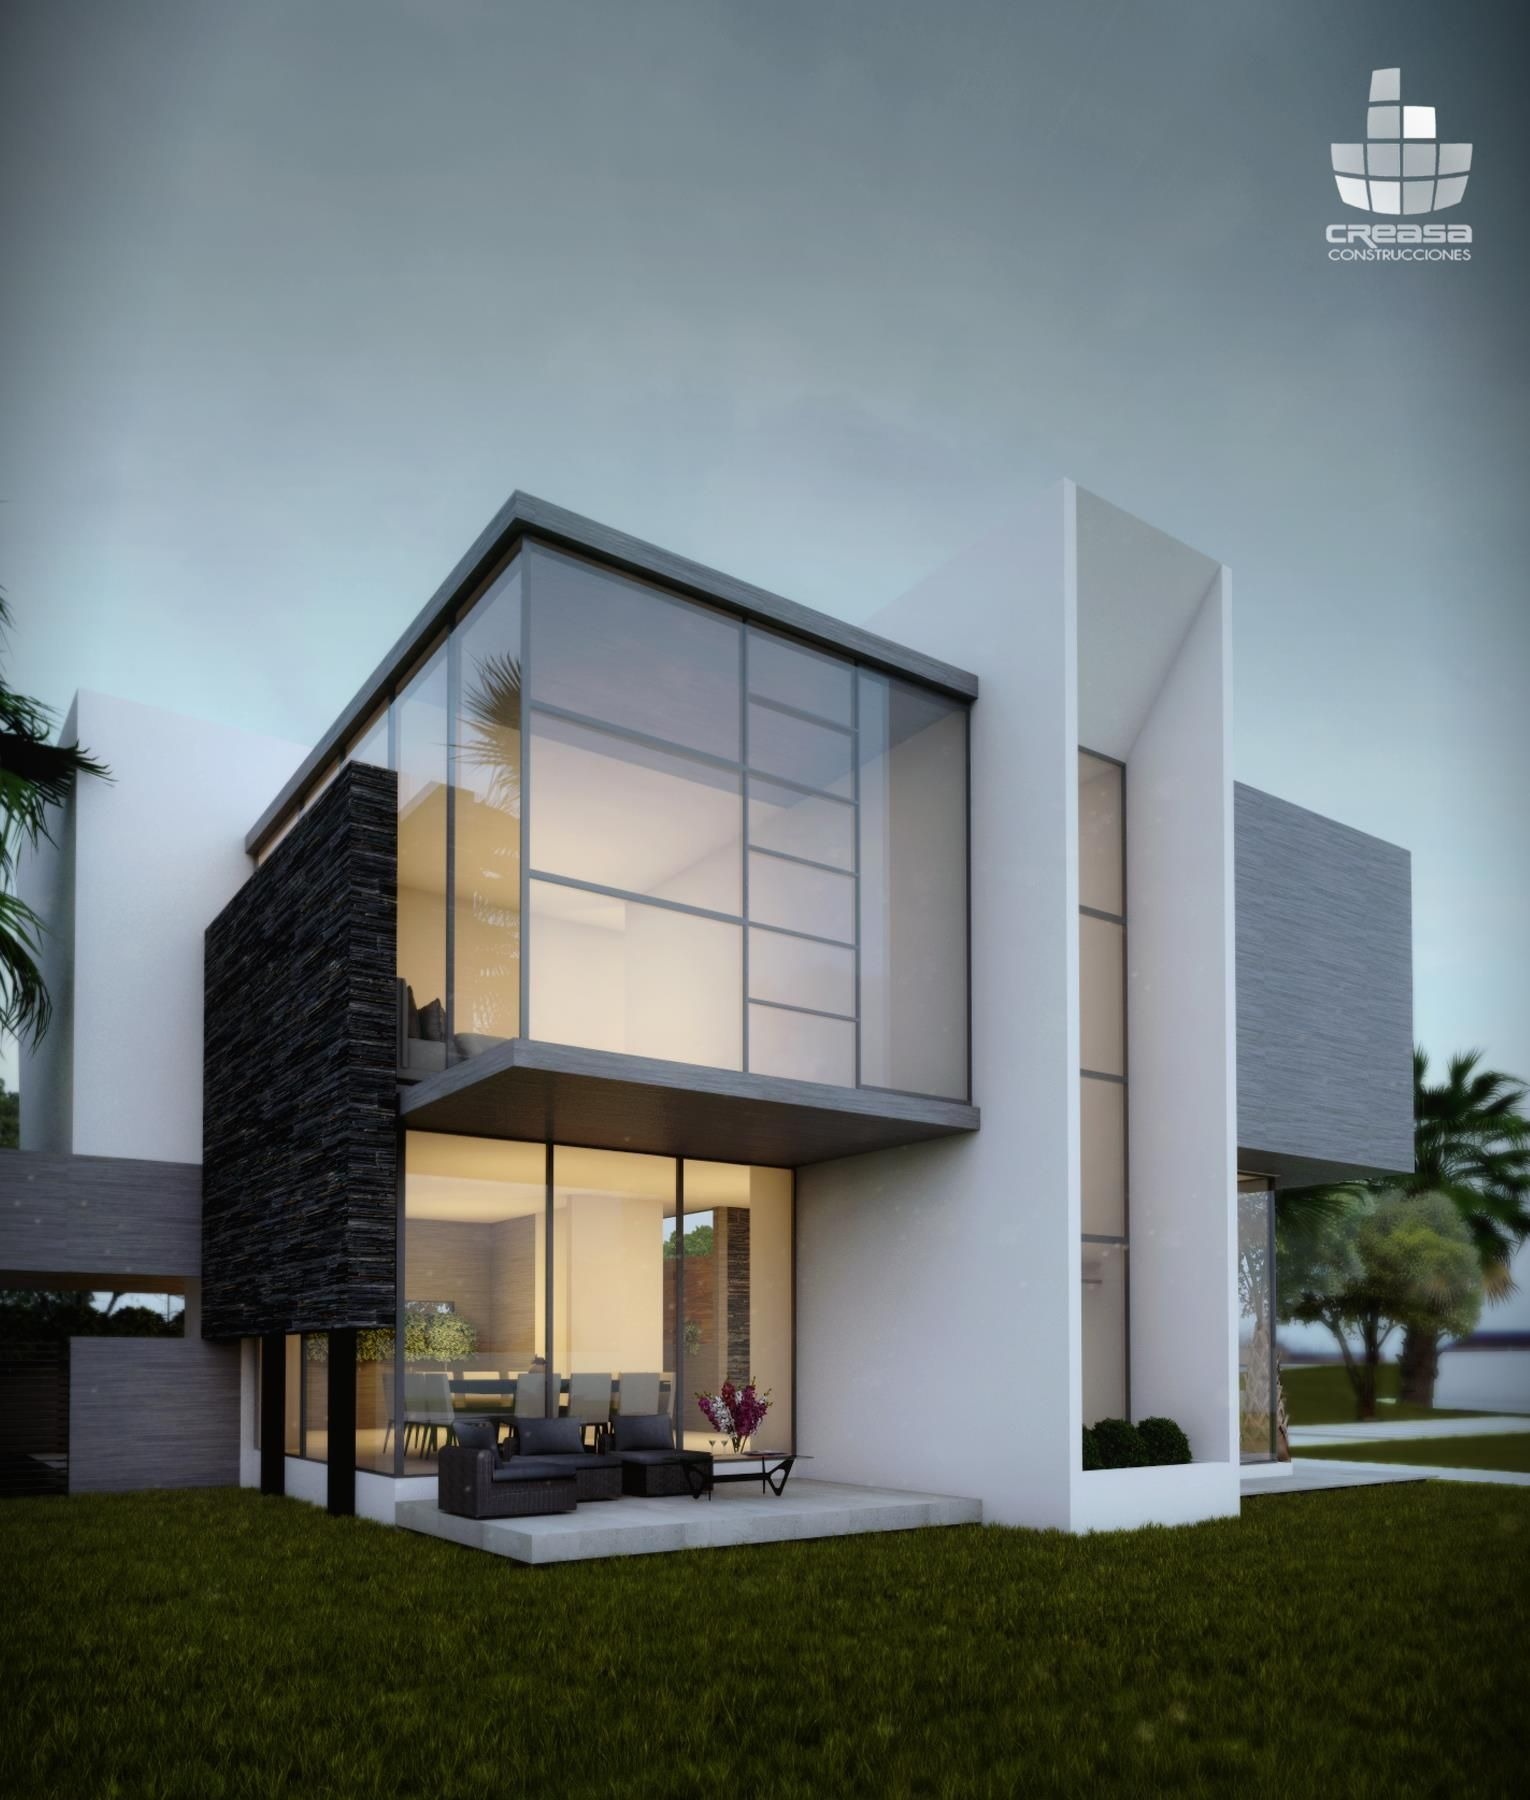 Creasa modern architecture pinterest villas house for Best modern buildings